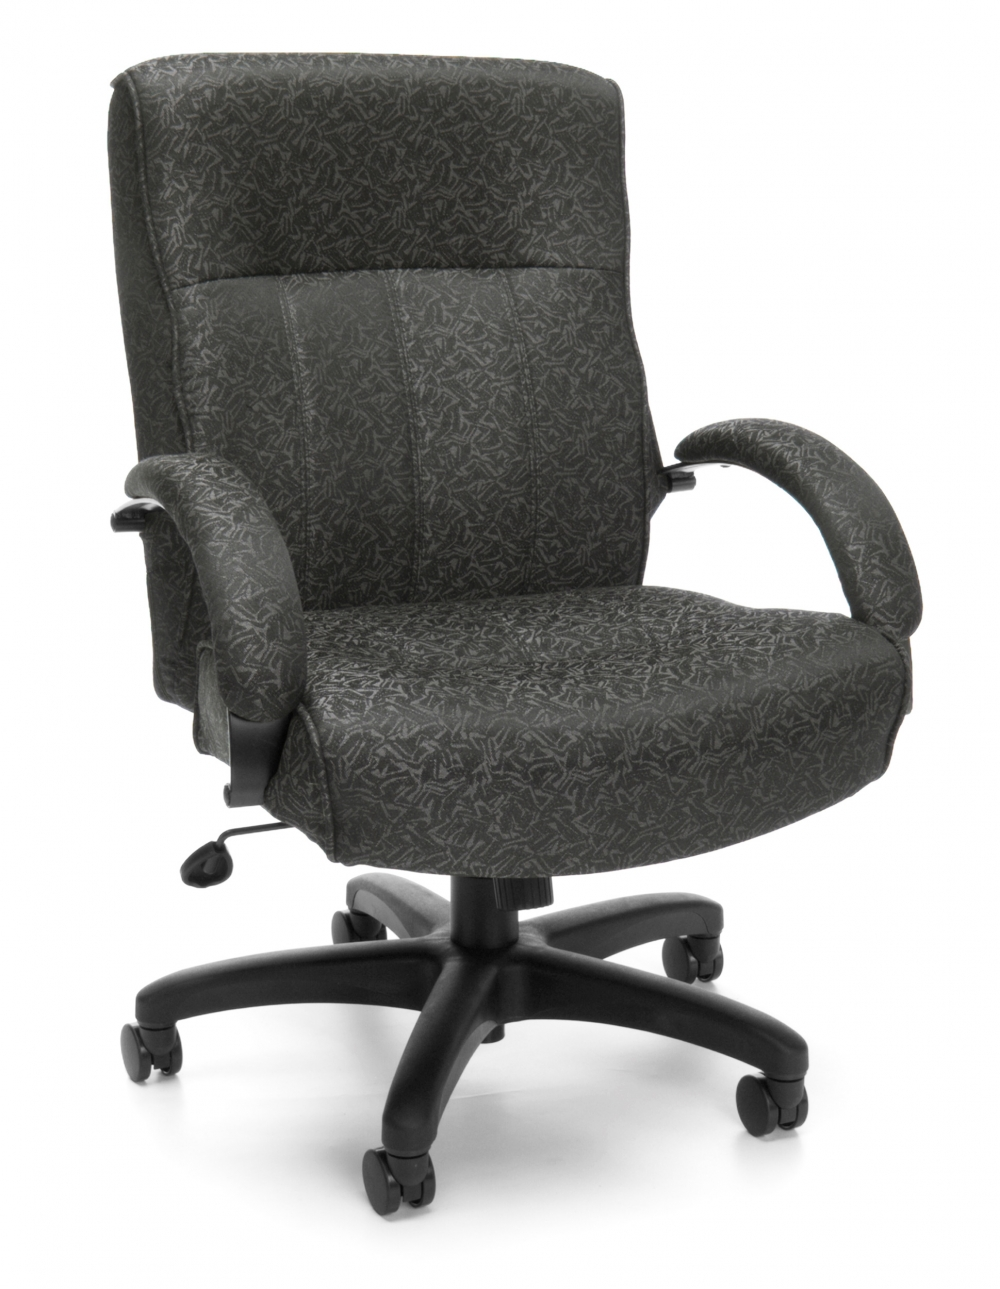 Big and tall executive office chairs cub 711 301 1 grayc mfo